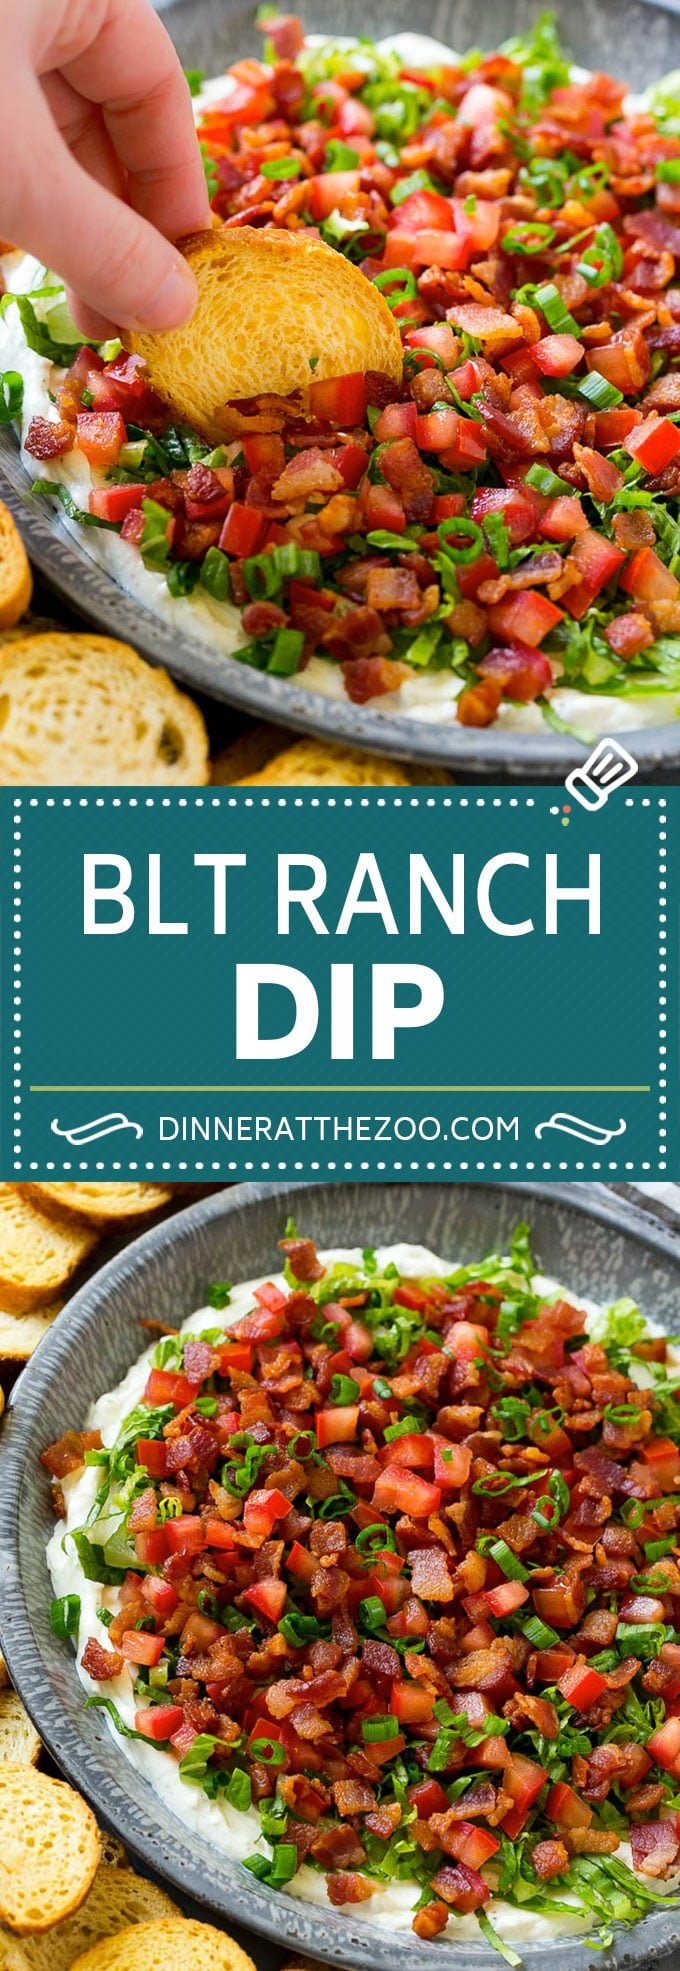 BLT Dip Recipe | Bacon Dip Recipe | Ranch Dip #dip #ranch #bacon #lettuce #tomato #appetizer #dinneratthezoo